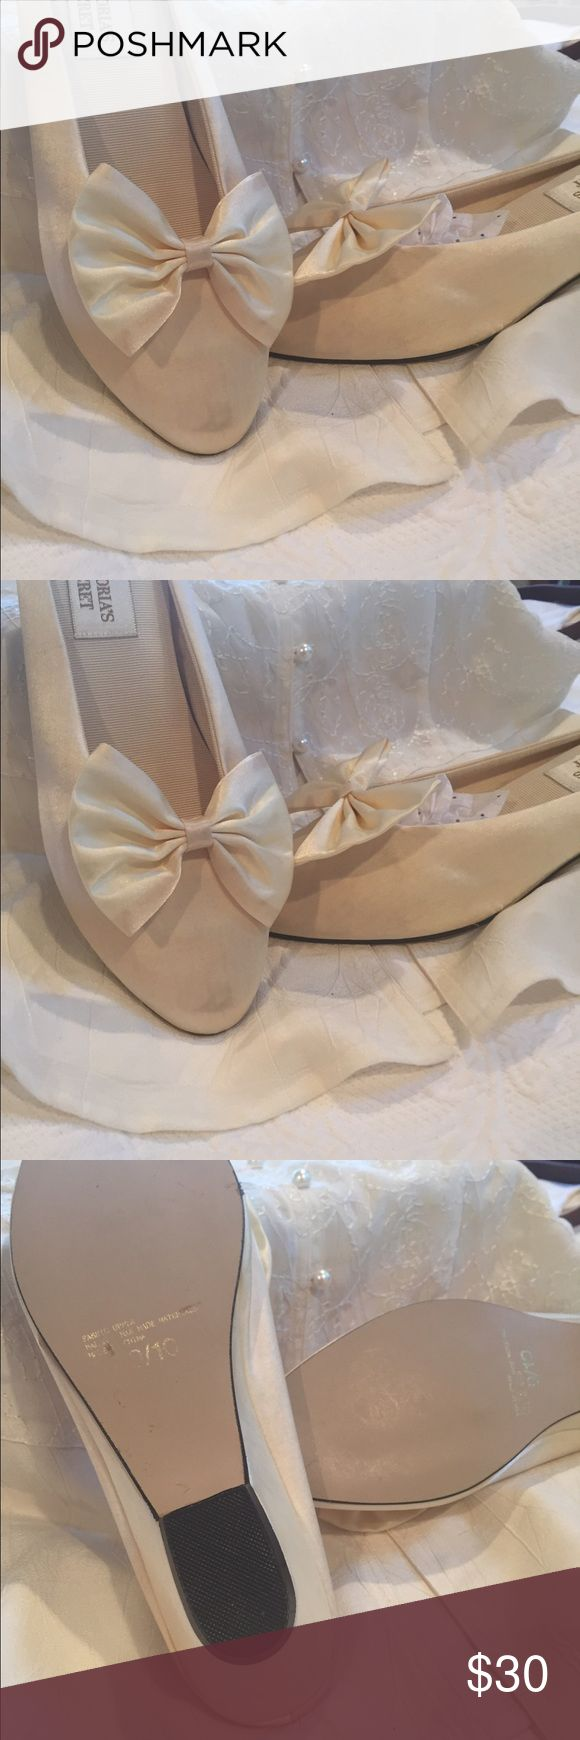 Vintage Victoria Secret satin slippers 9/10 Cream satin slippers with bow detail, slight wedge. Some smudges due to age but remarkably well kept, soles are clean. Very feminine and old Hollywood! Victoria's Secret Shoes Slippers